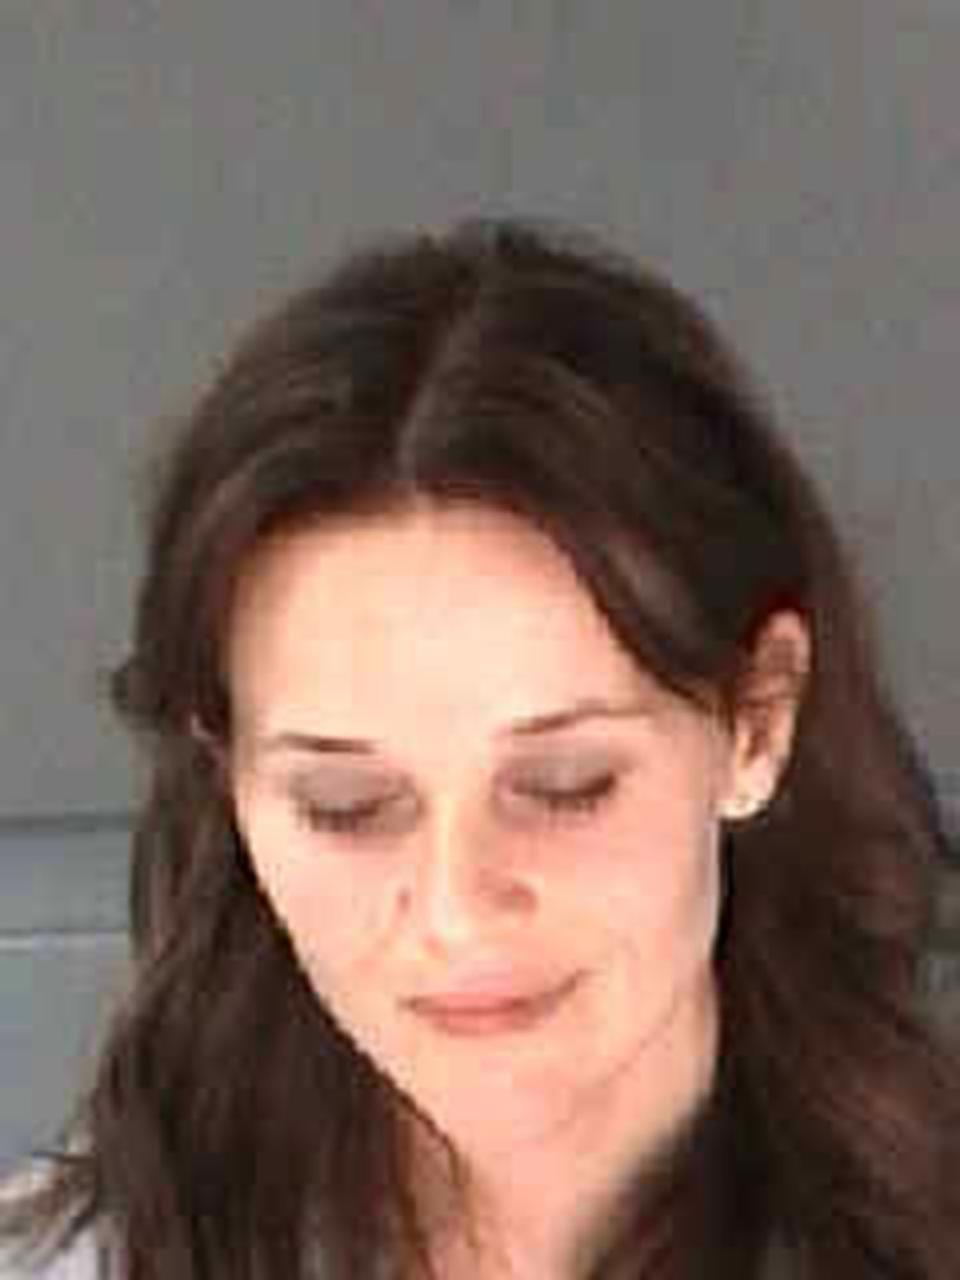 This undated photo provided by the City of Atlanta Department of Corrections shows Reese Witherspoon. The Oscar-winning actress was arrested on a disorderly conduct charge after a state trooper said she wouldn't stay in the car while her husband, James Toth, was given a field sobriety test in Atlanta. (AP Photo/City of Atlanta Department of Corrections)